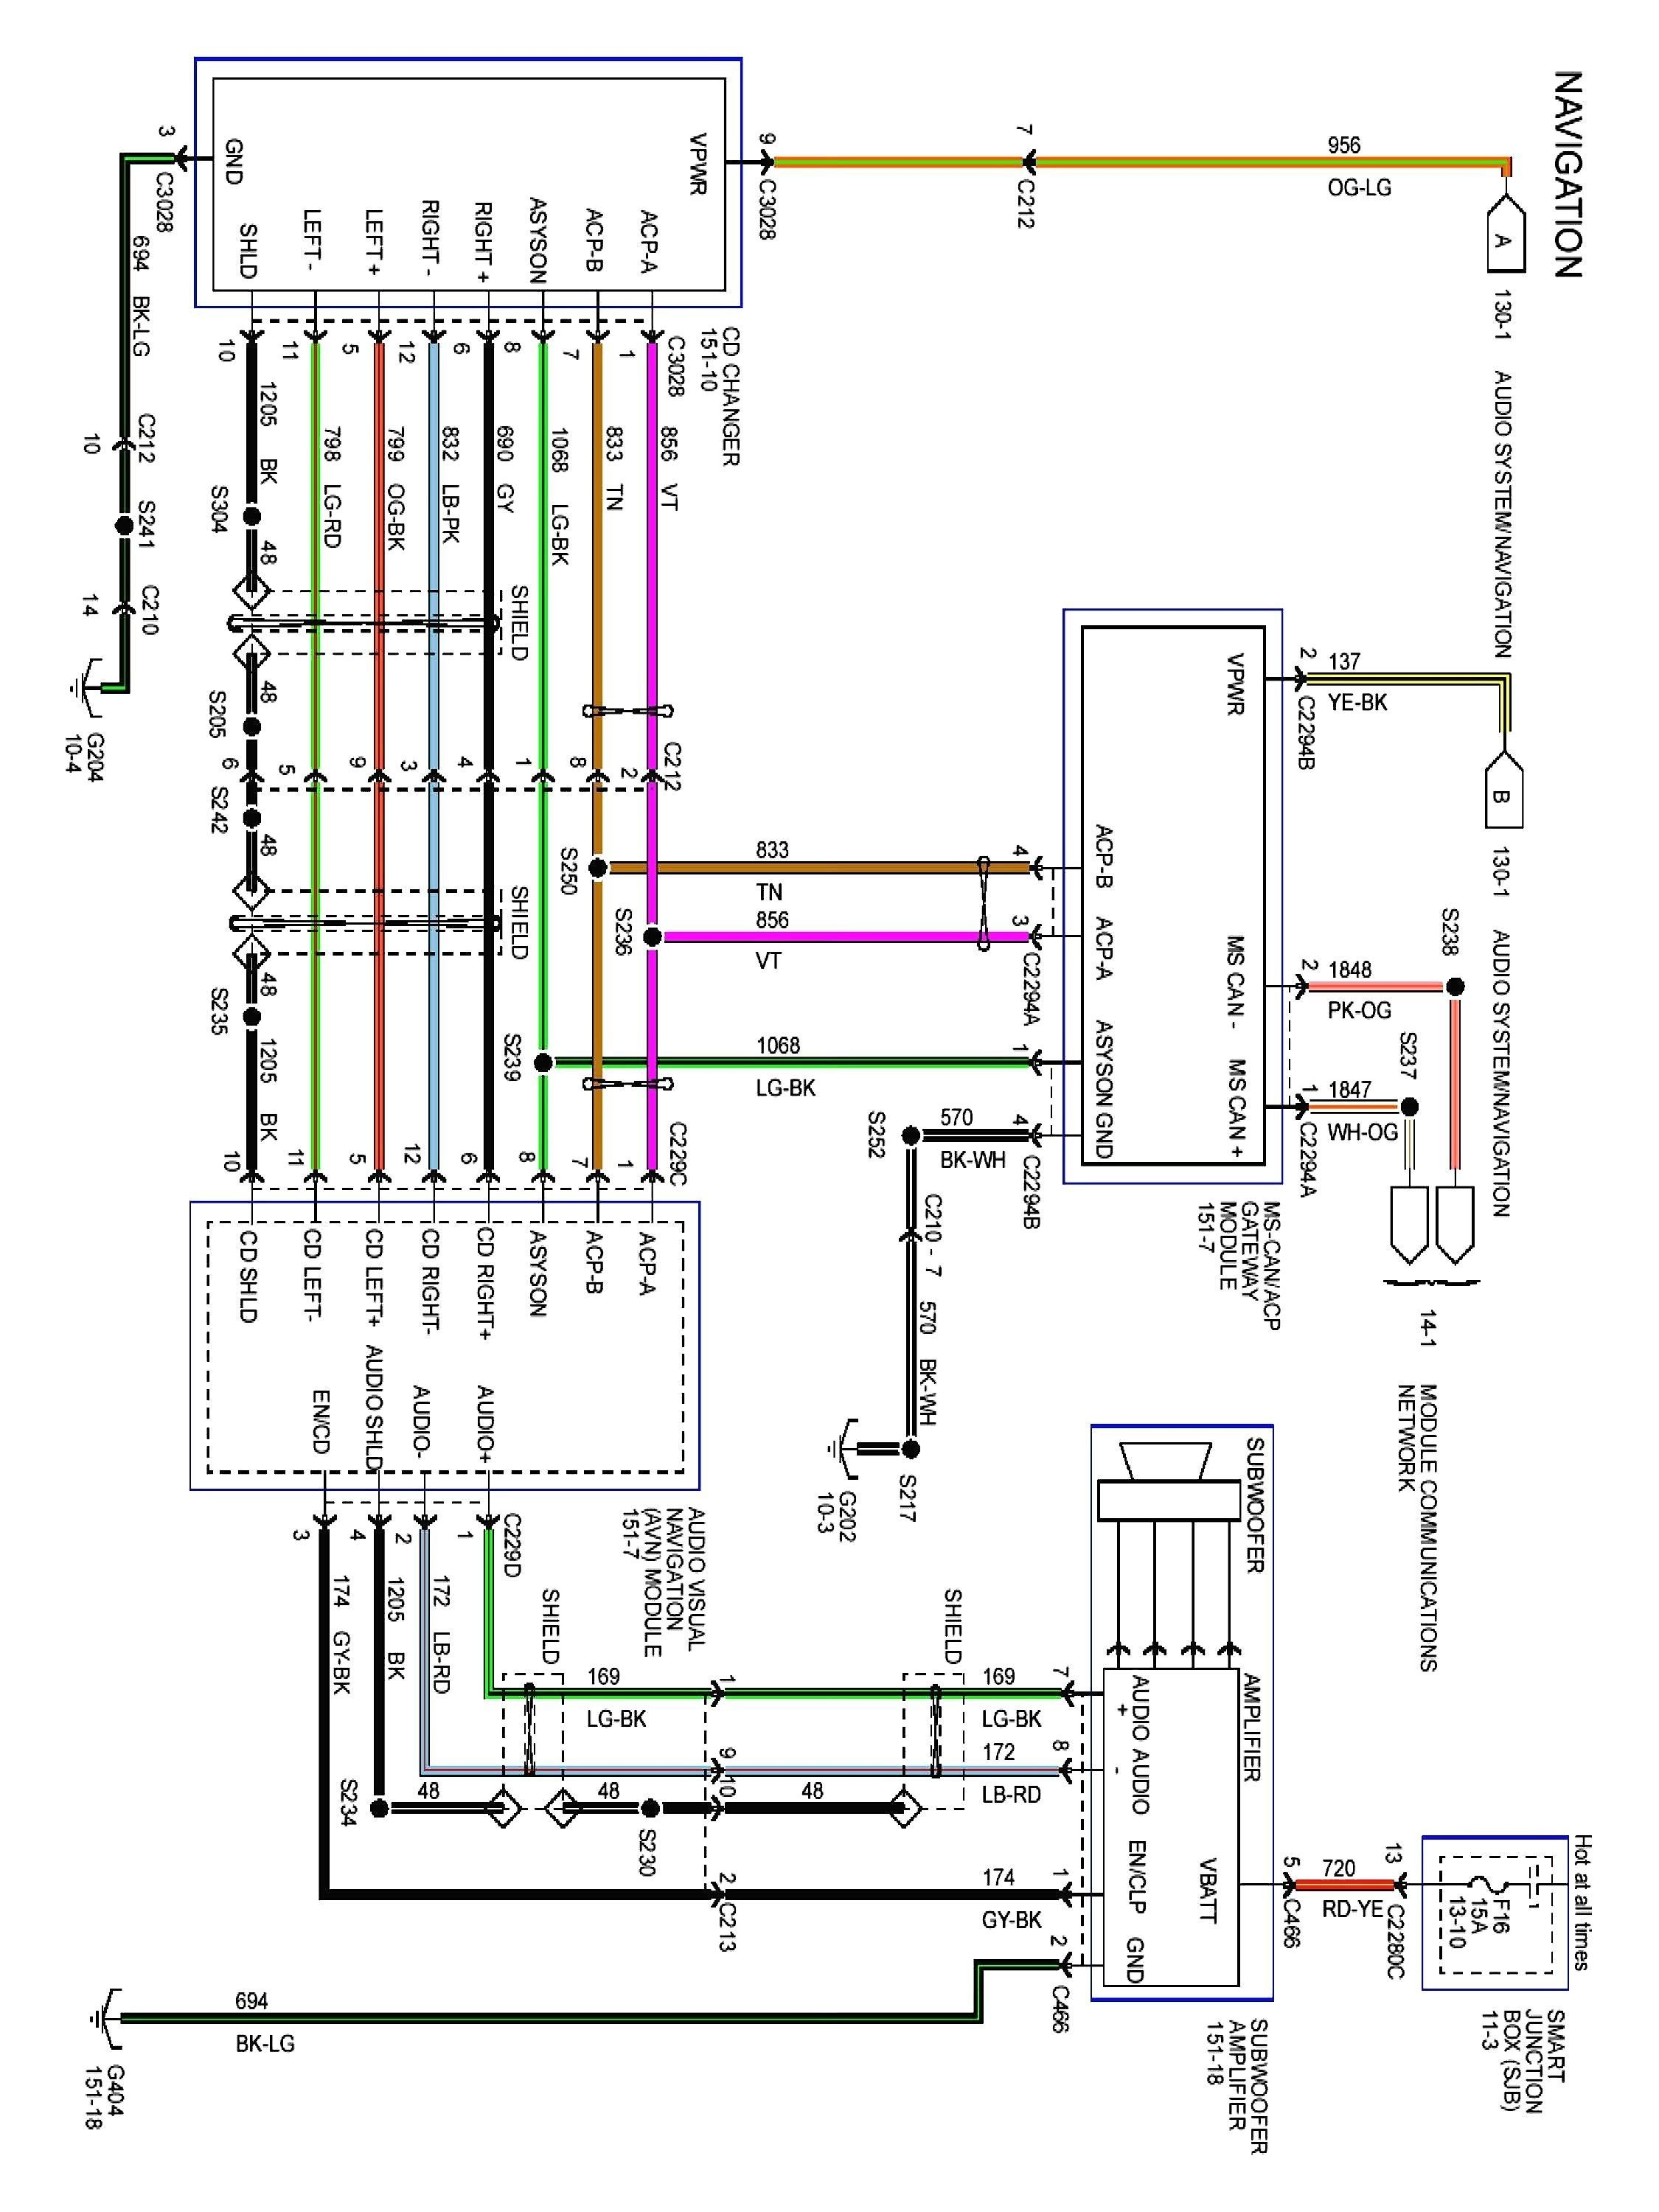 70 Lovely 2014 Ram 1500 Radio Wiring Diagram Ford Expedition Electrical Wiring Diagram Trailer Wiring Diagram